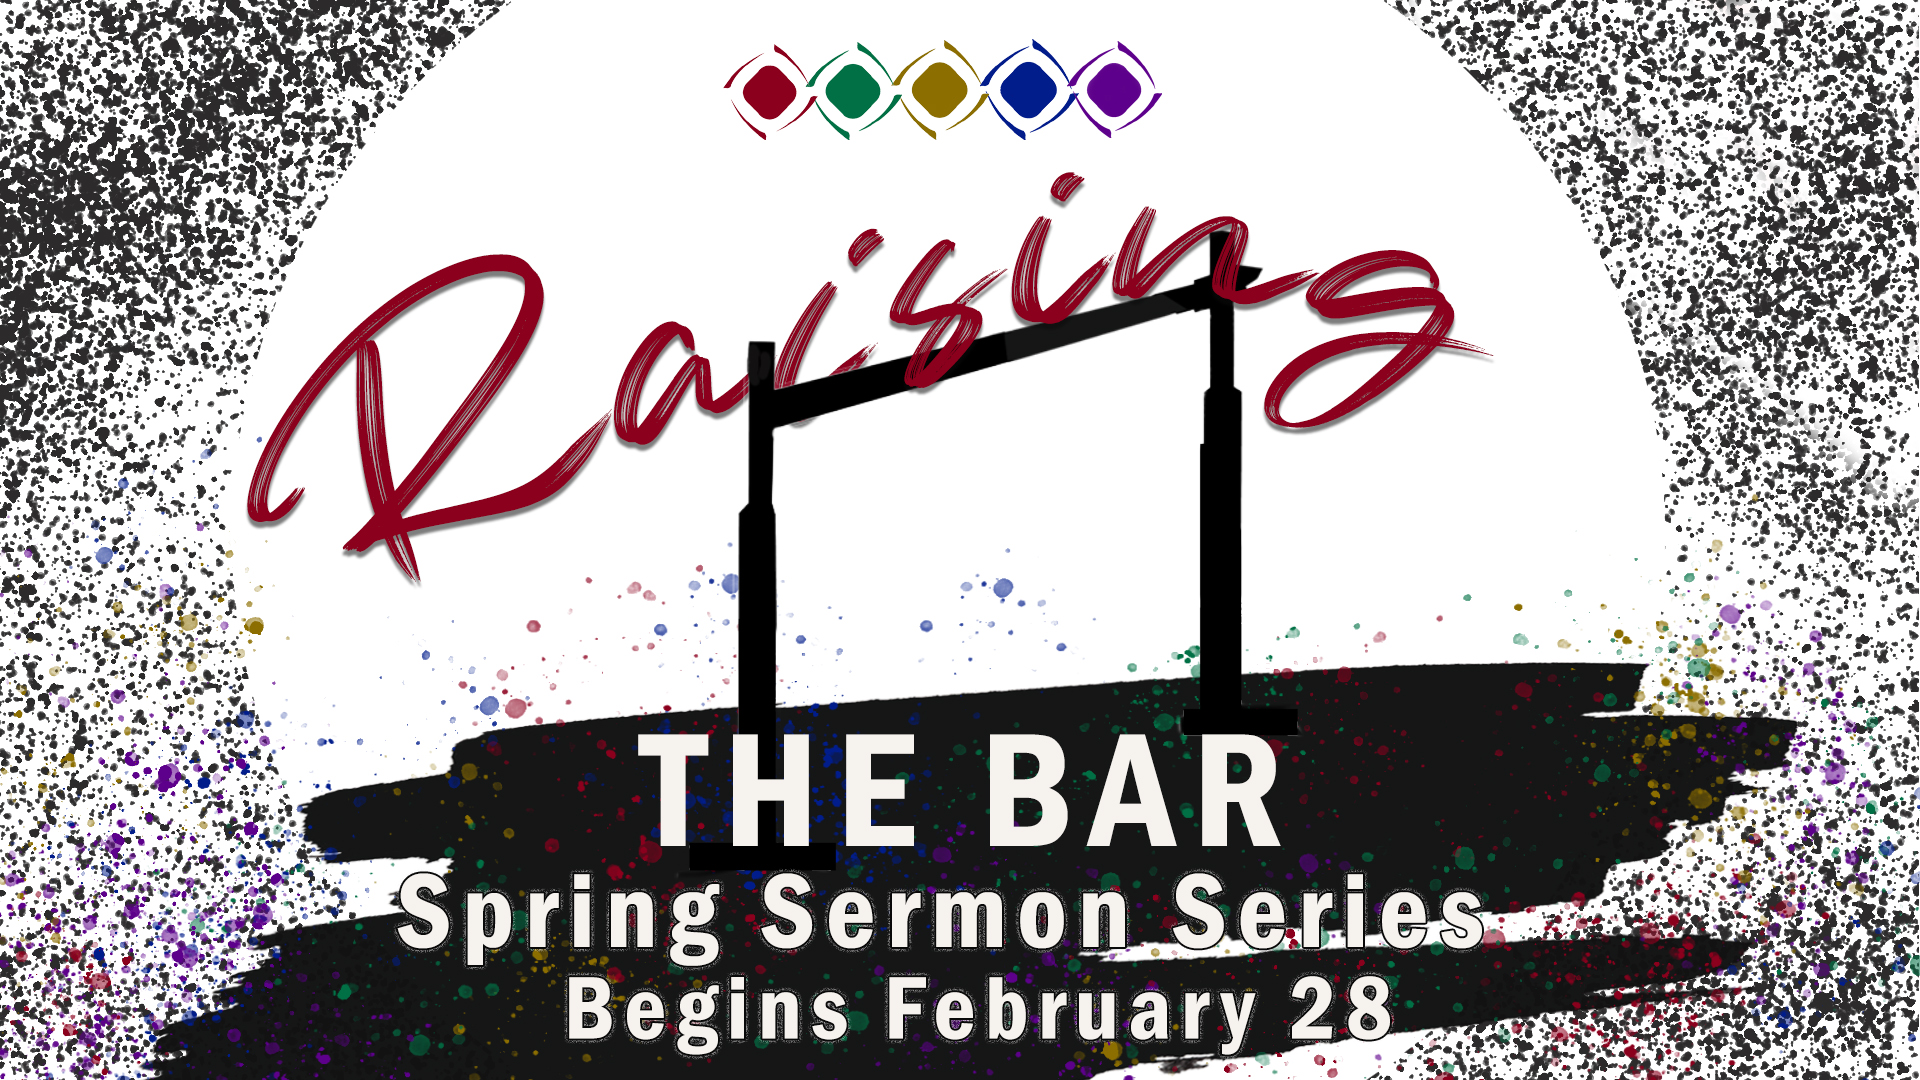 2021_Raising the Bar_Series with date